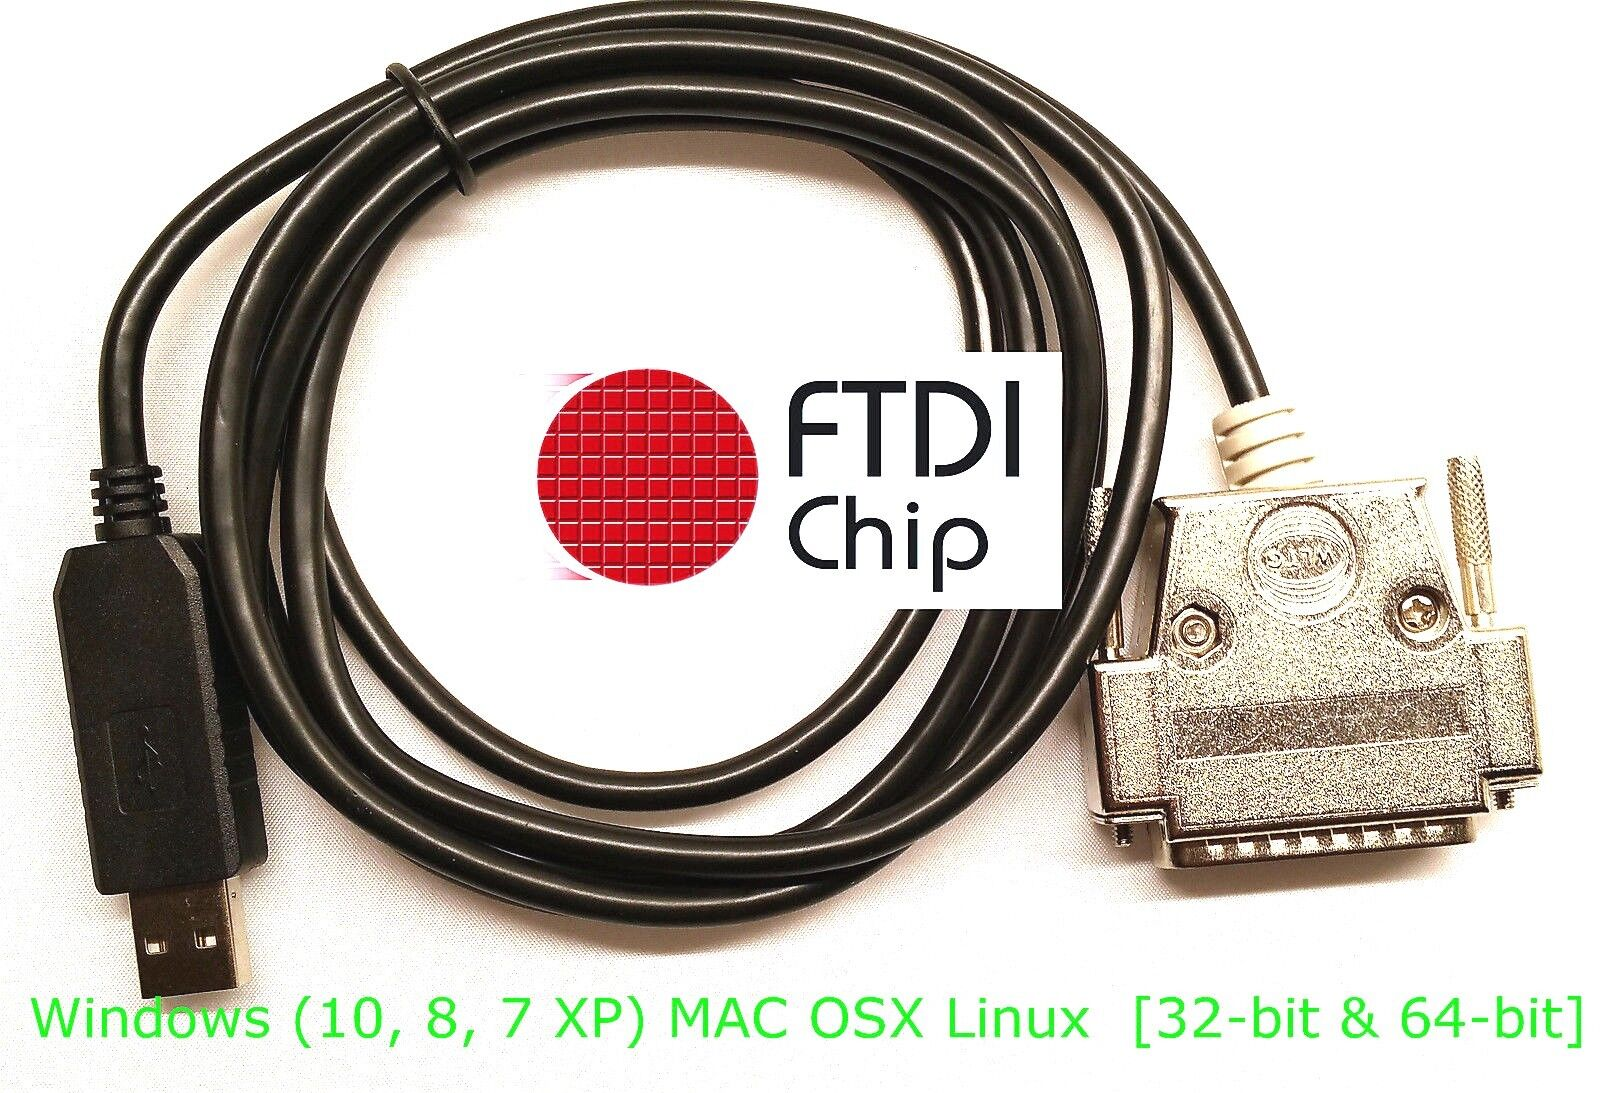 Ftdi Usb Db-25 Male Serial Rs-232c Null Modem Cable For S...